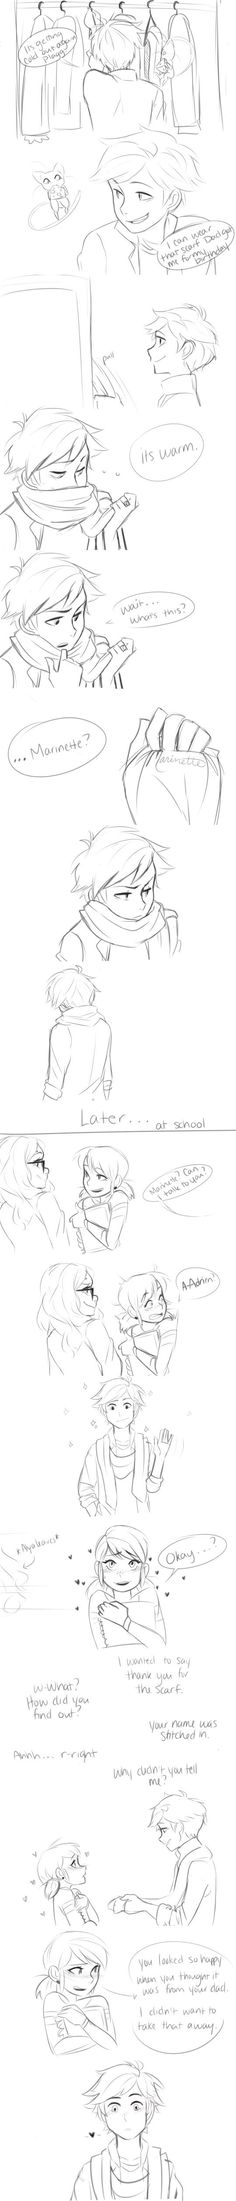 Marinette is so sweet! And i think that Adrien just figured it out! Miraculous Ladybug Fanfiction, Miraculous Ladybug Fan Art, Meraculous Ladybug, Ladybug Comics, Lady Bug, Cn Fanart, Marinette Et Adrien, Ladybug Und Cat Noir, Kevedd